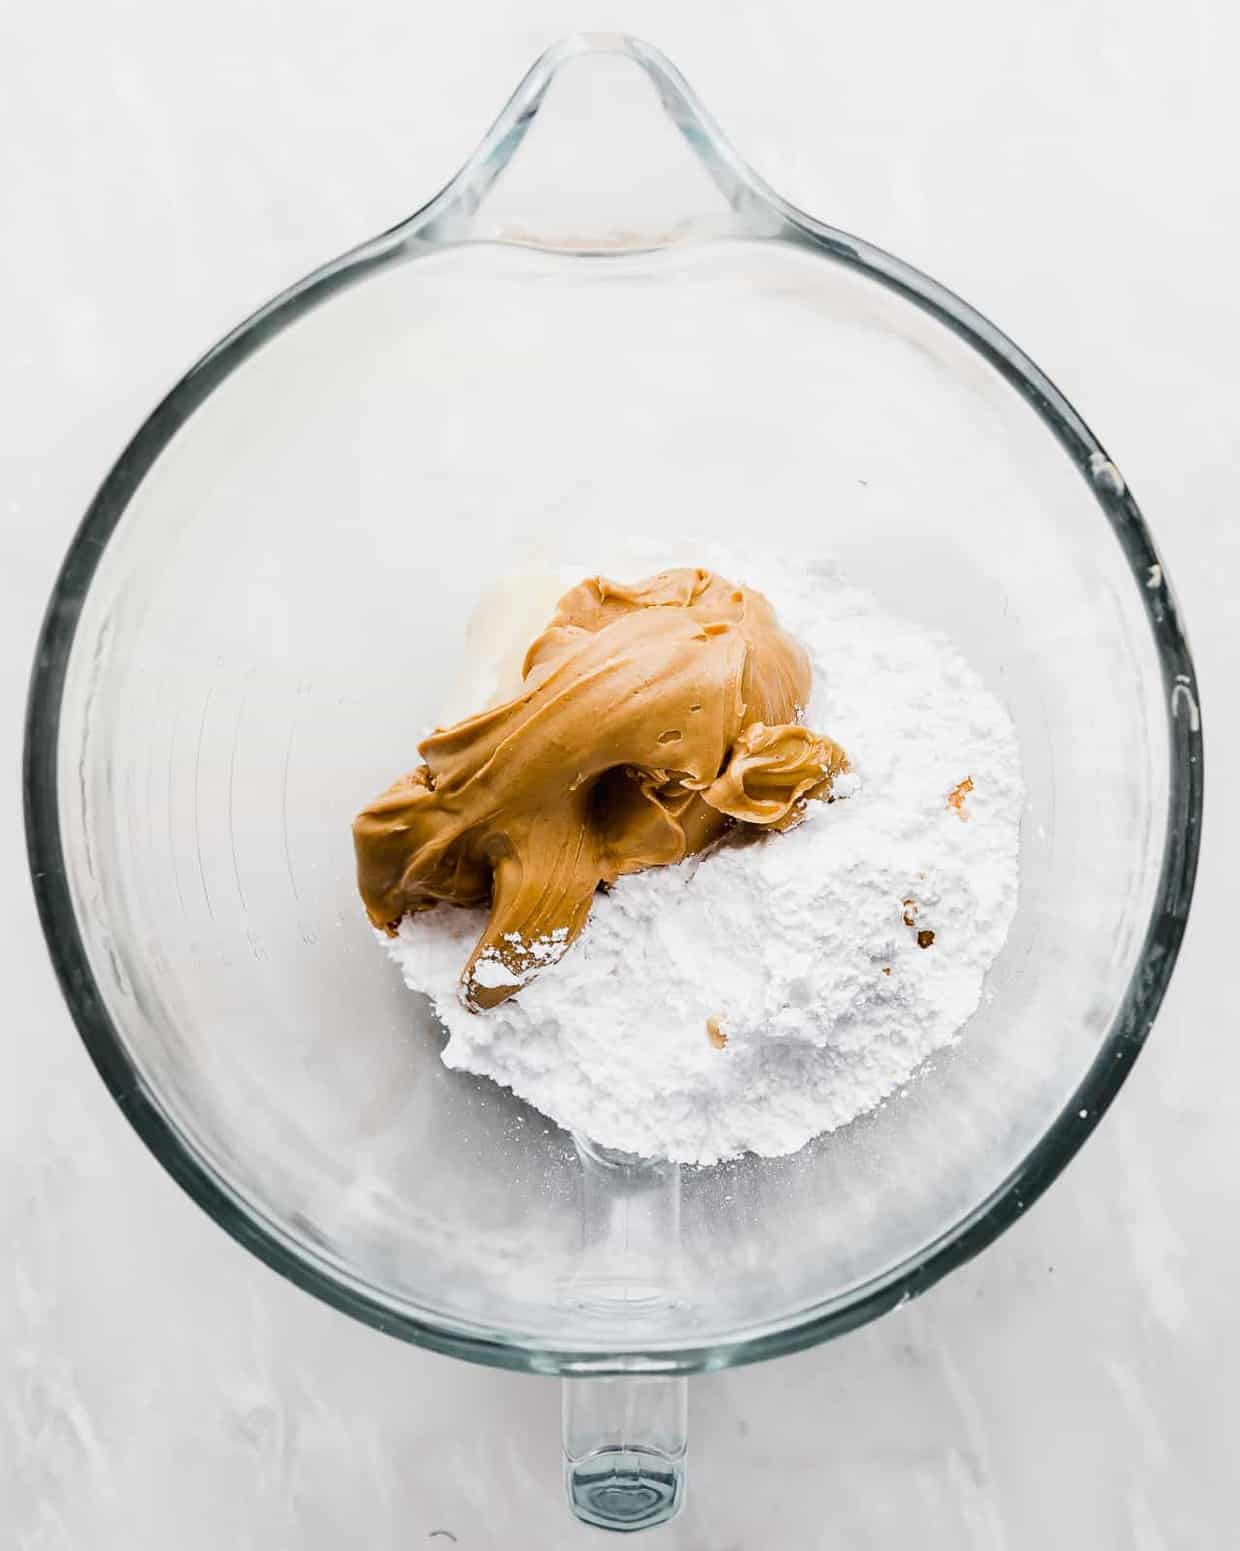 A glass bowl with peanut butter and powdered sugar in it.